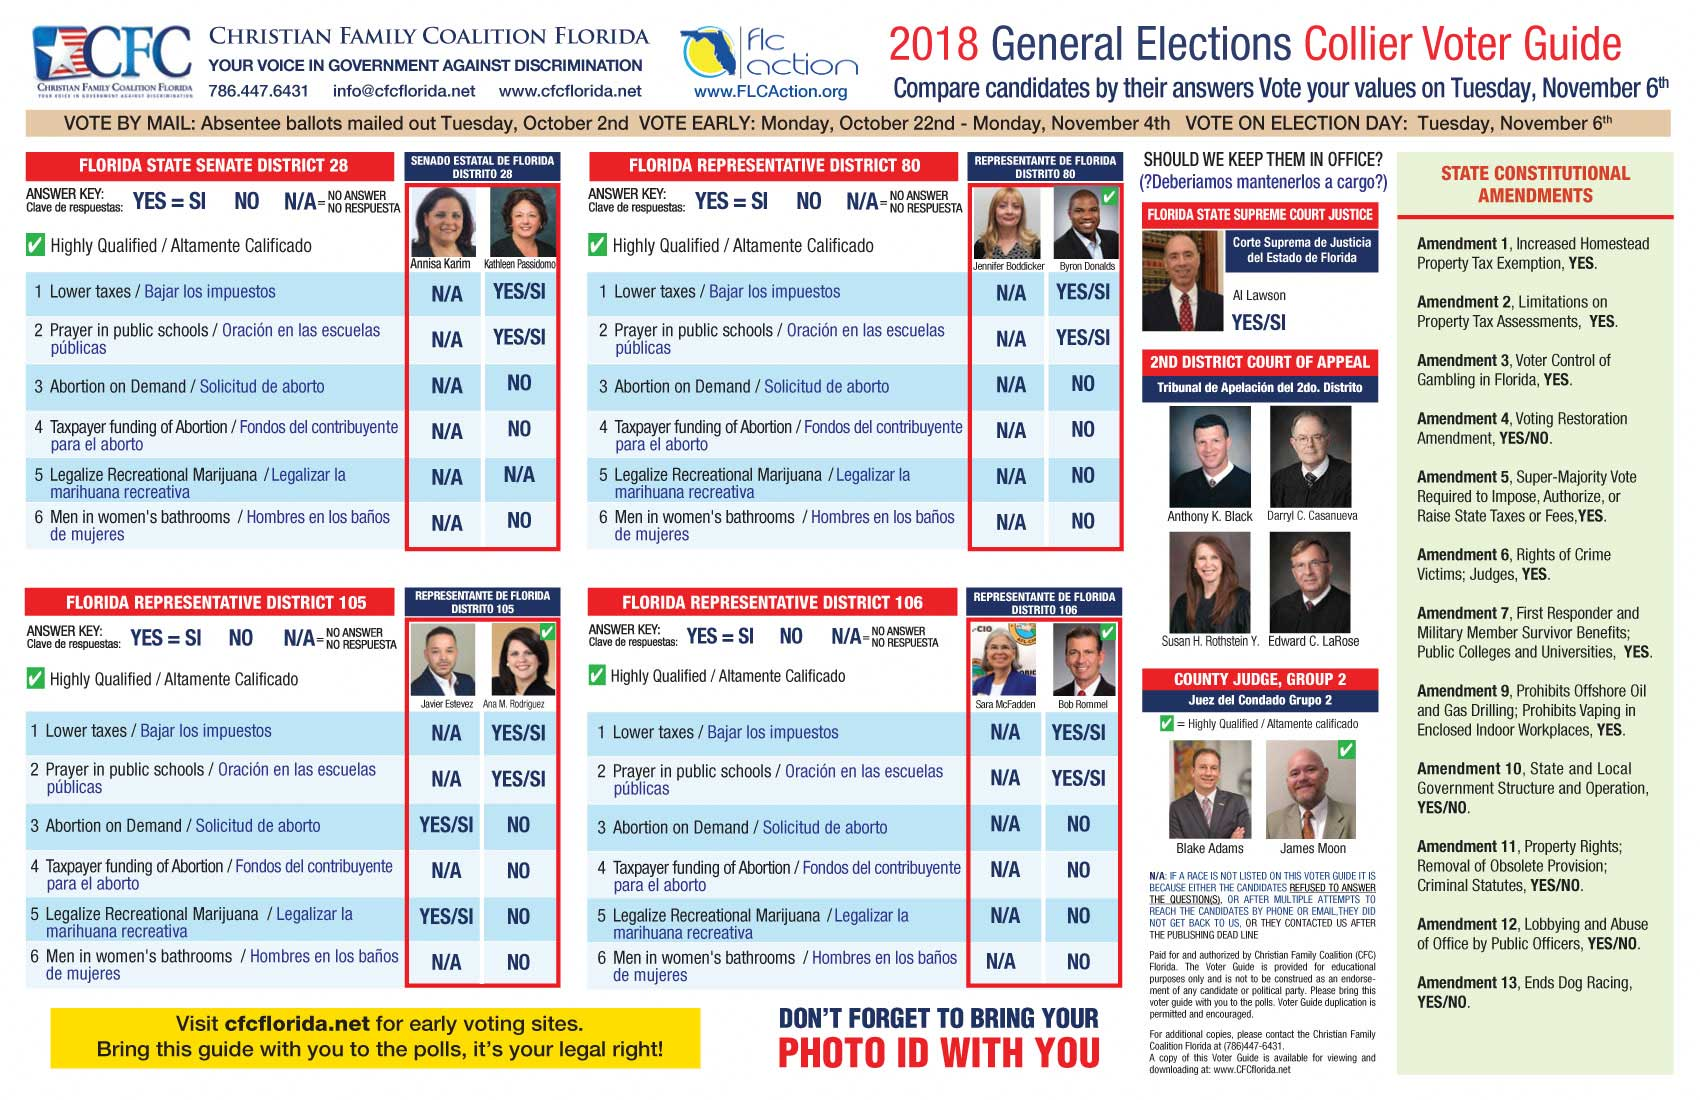 2018-collier-voter-guide_Page_2